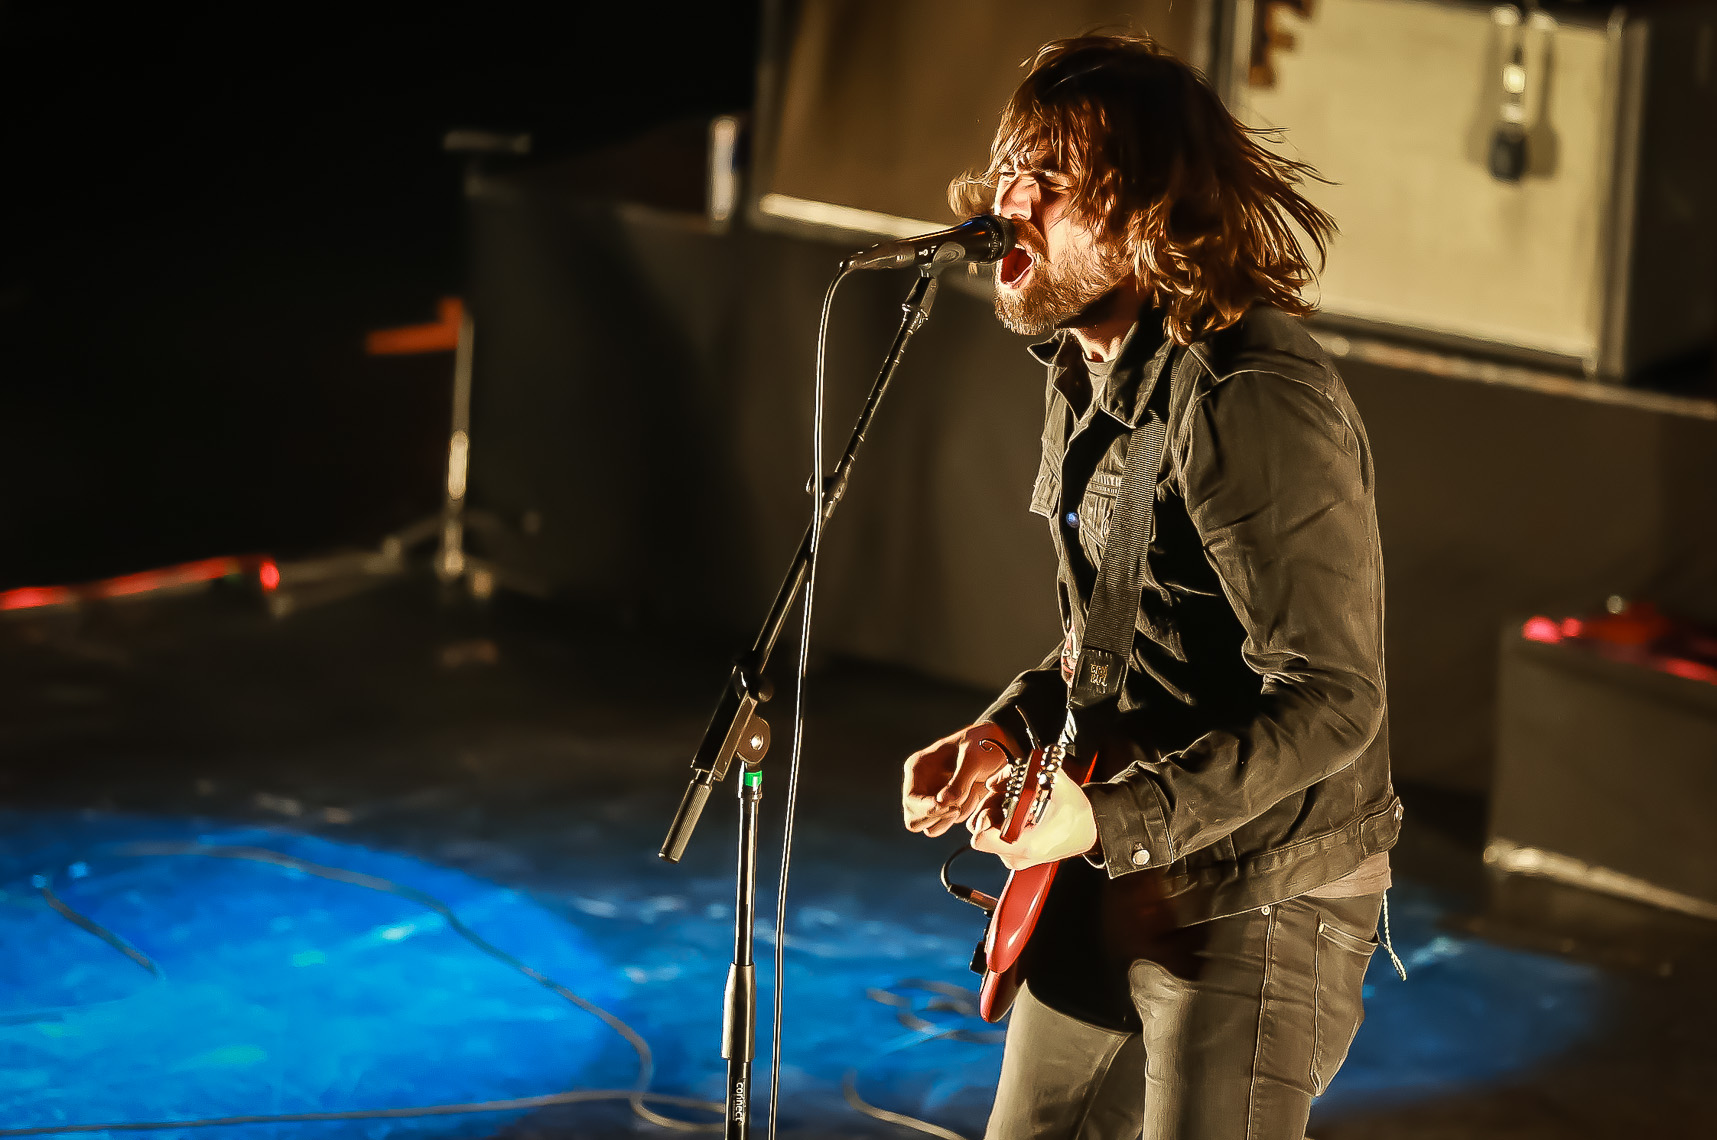 Justin Young of The Vaccines by music photographer Deborah Lowery